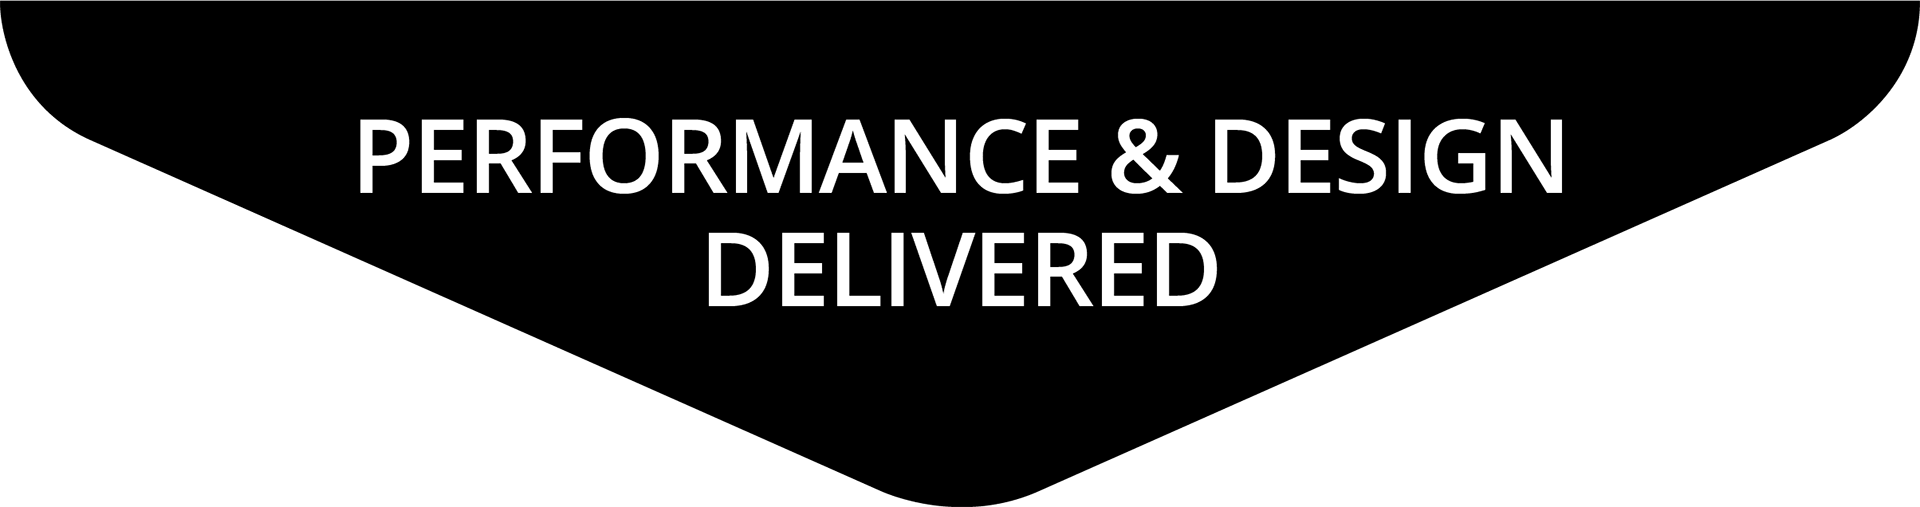 Performance & Design